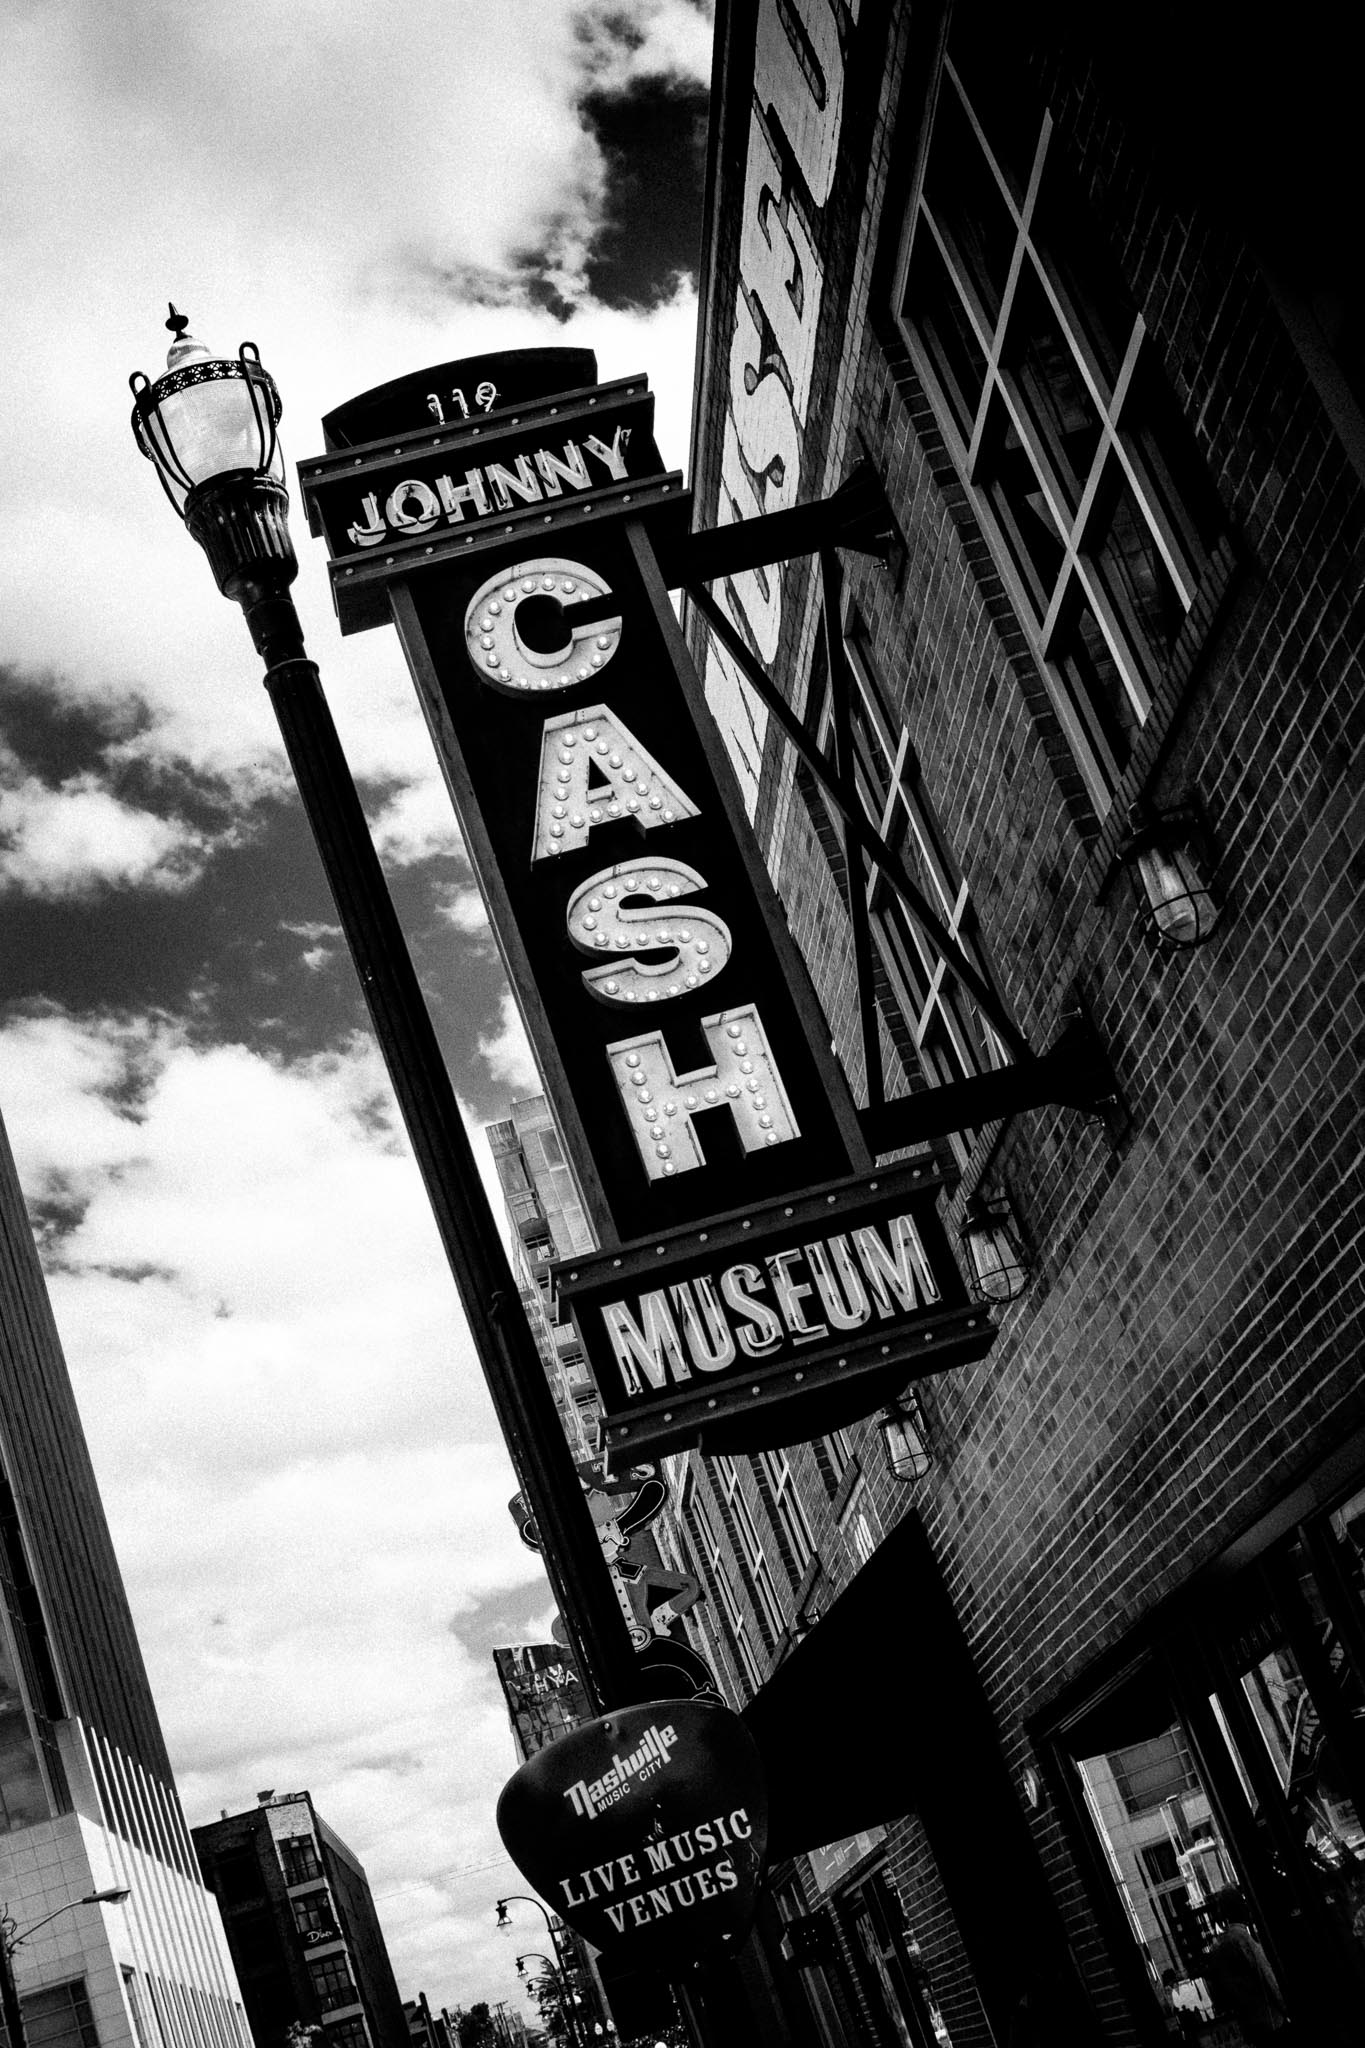 The Johnny Cash Museum in Nashville